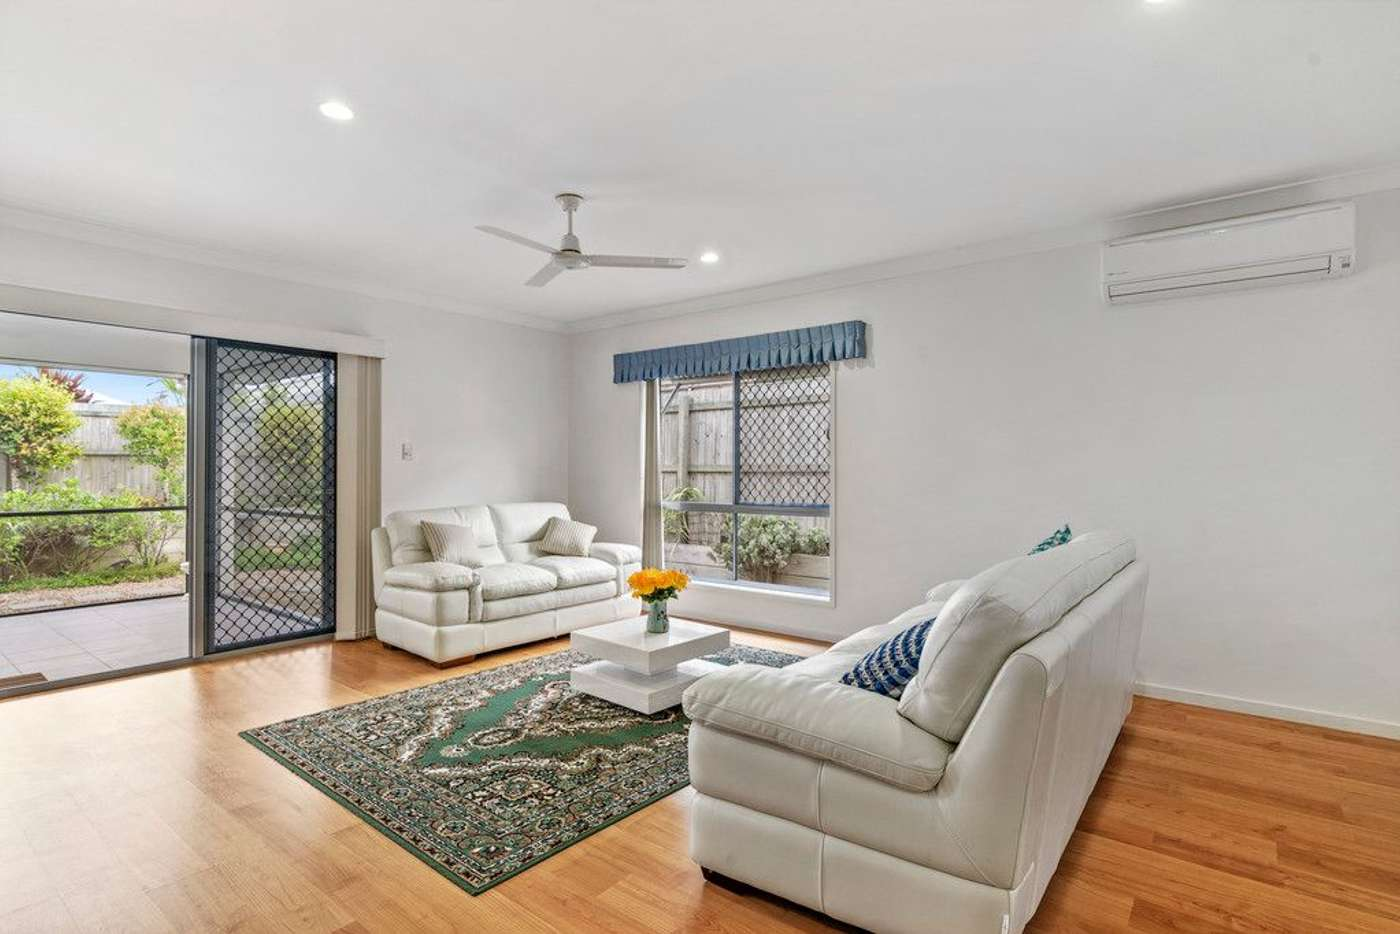 Fifth view of Homely house listing, 3 Crenshaw Place, Peregian Springs QLD 4573